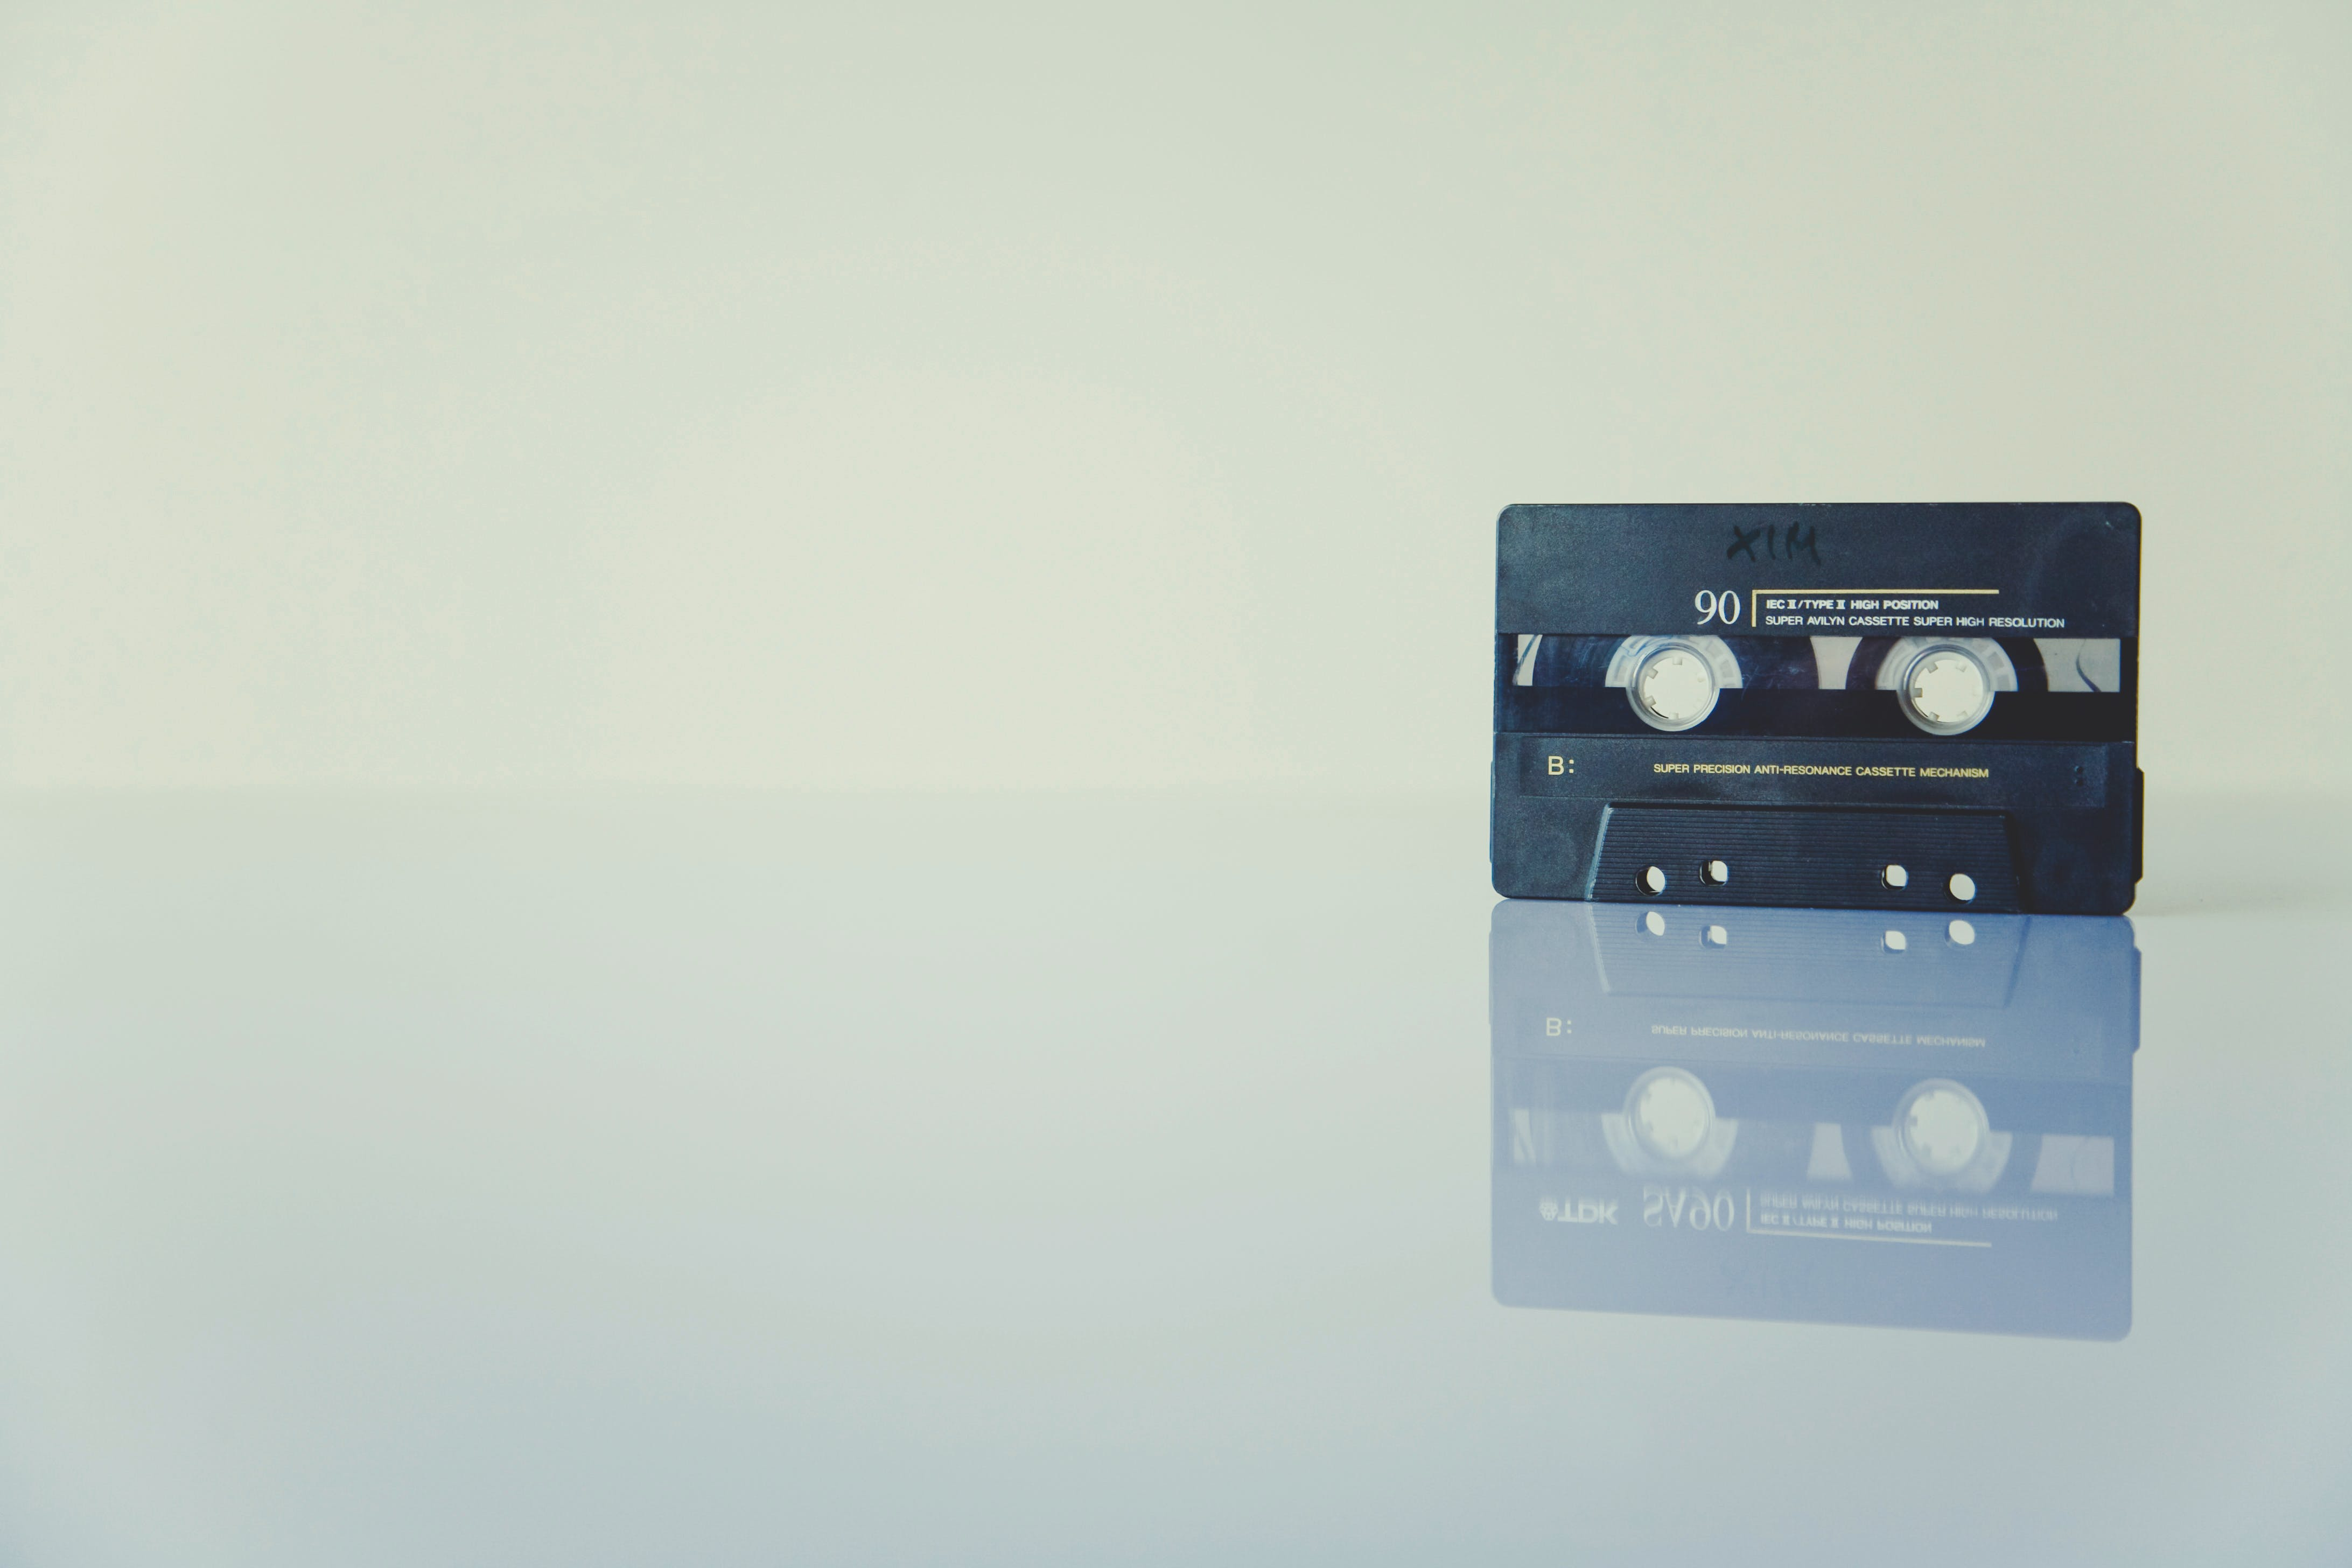 Black Cassette Tape Standing on White Surface